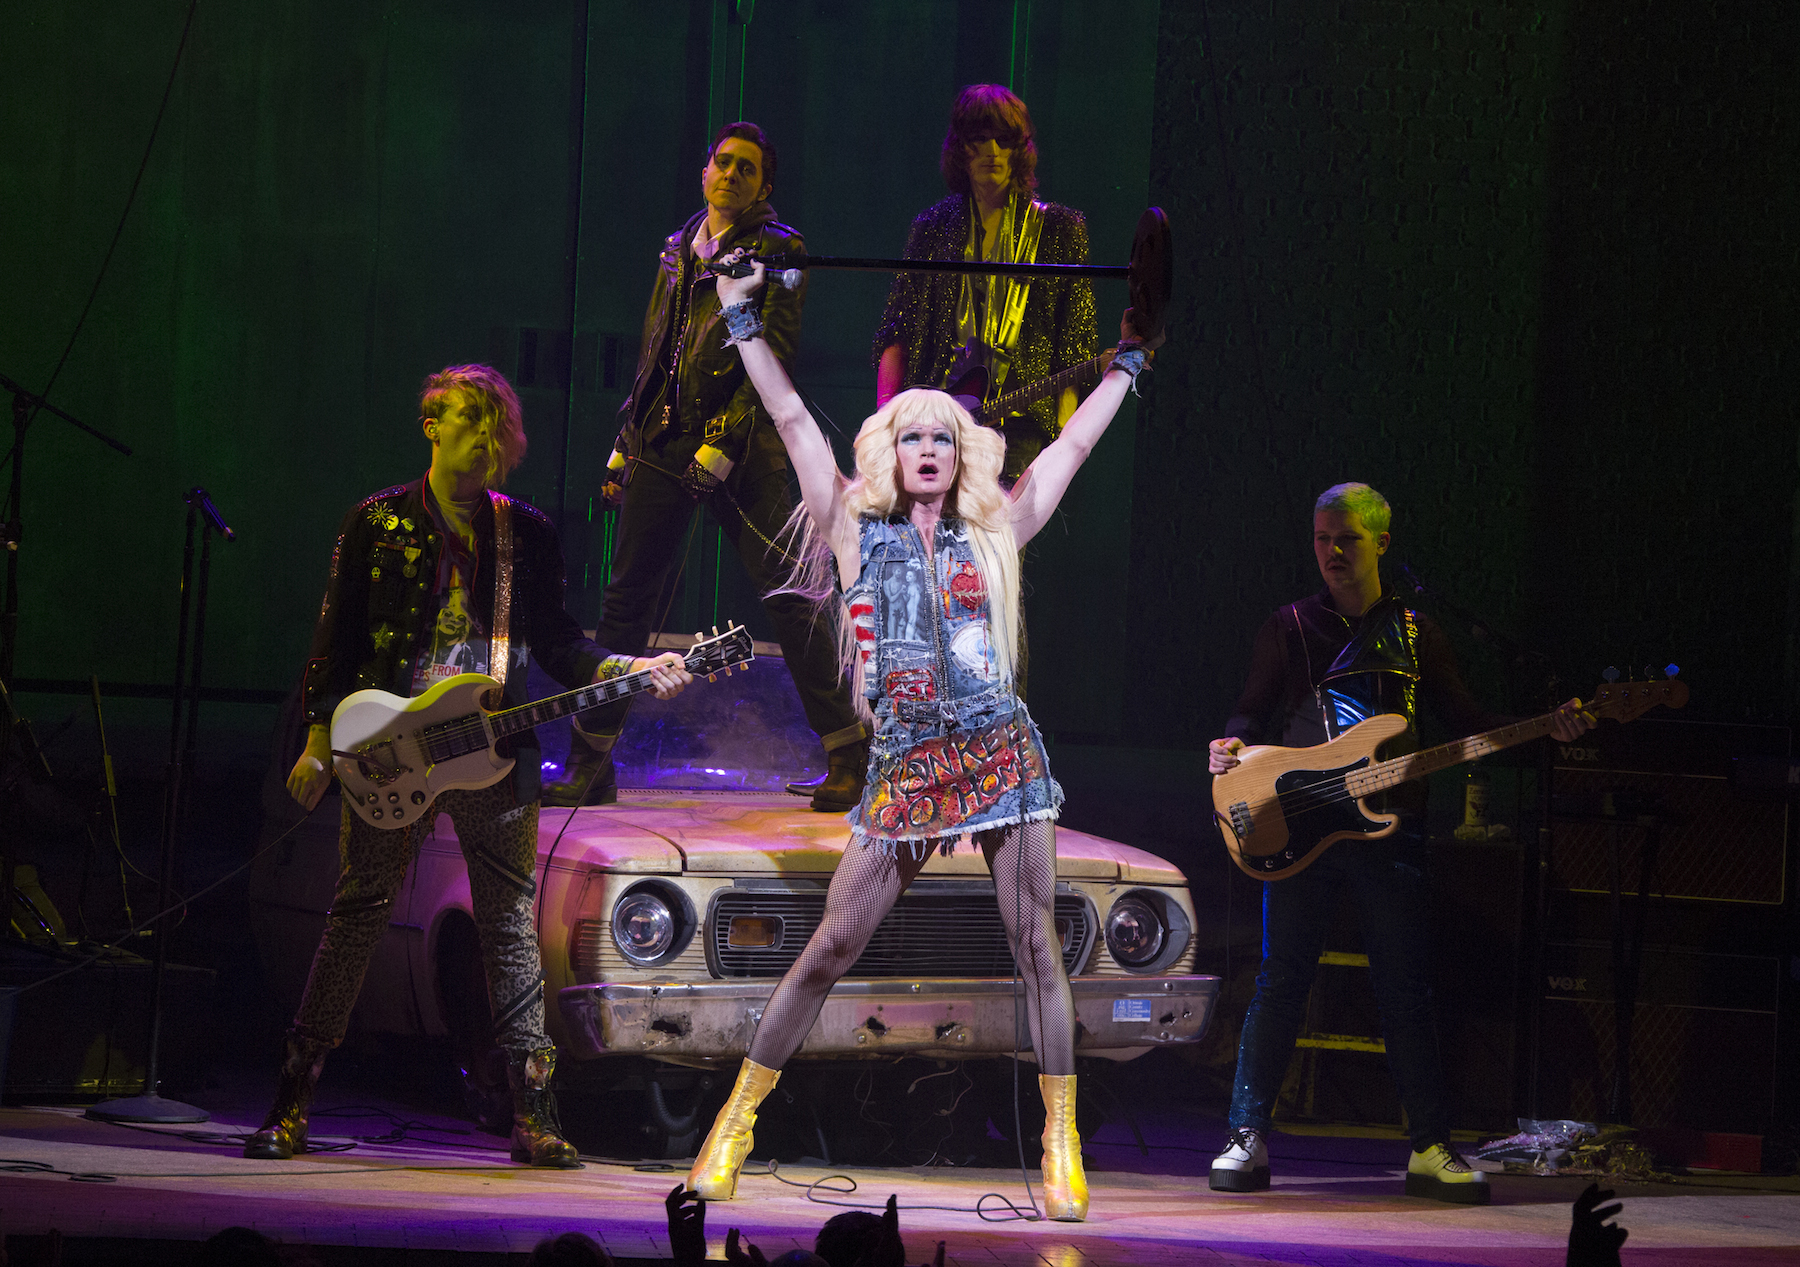 a review of the musical hedwig and the angry inch by john cameron mitchell Hedwig and the angry inch was a 1998 off-broadway rock opera by stephen trask and john cameron mitchell, adapted into a film in 2001 with mitchell in the.